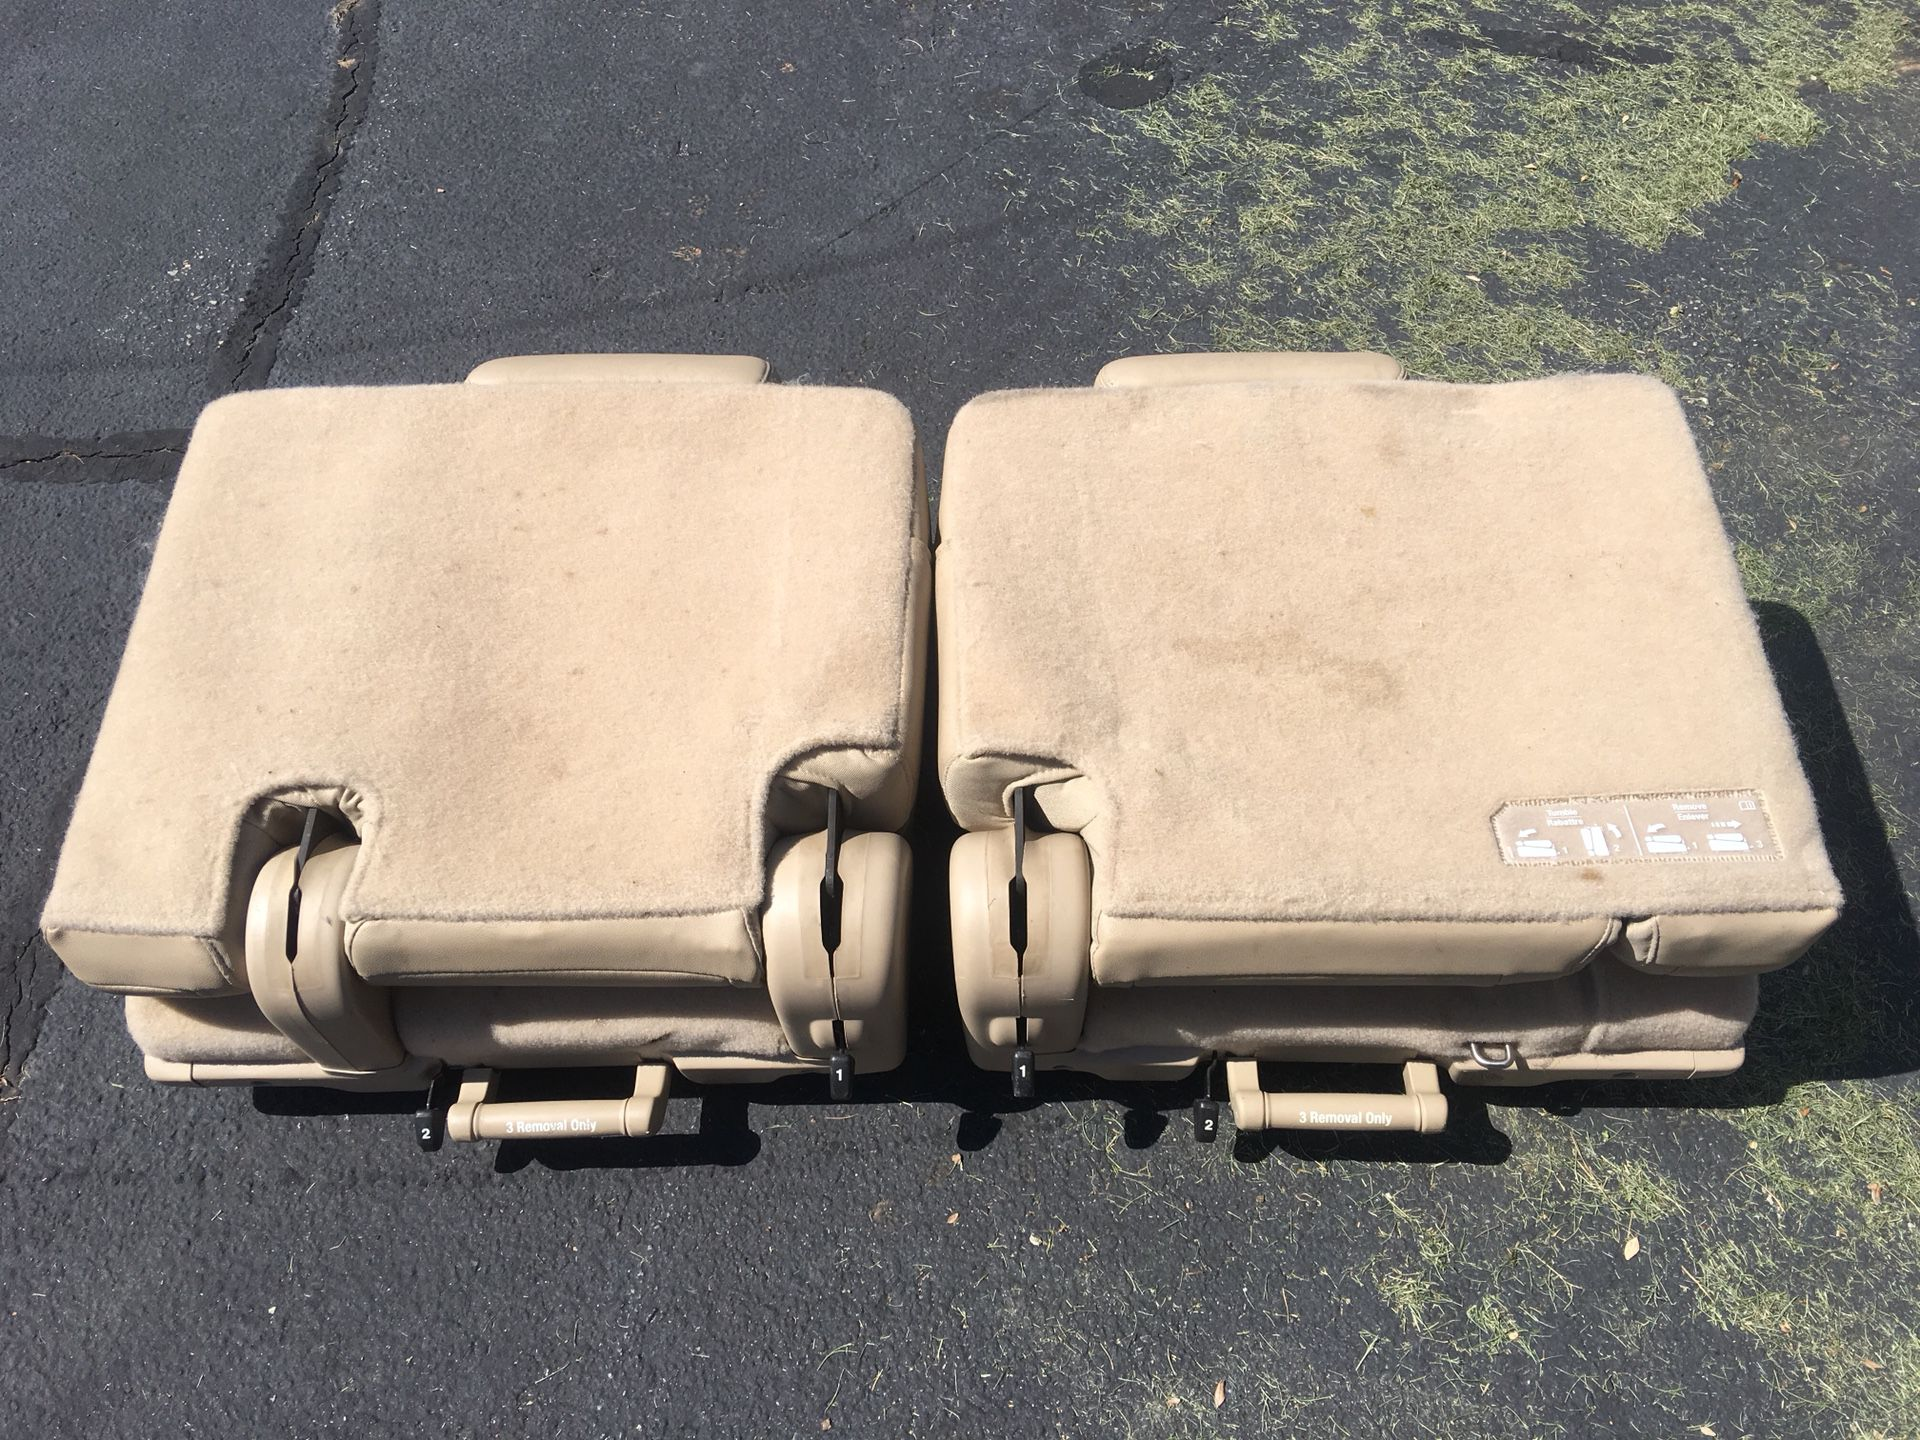 Two factor tan leather third row seats for 2010-2014 Chevy Tahoe